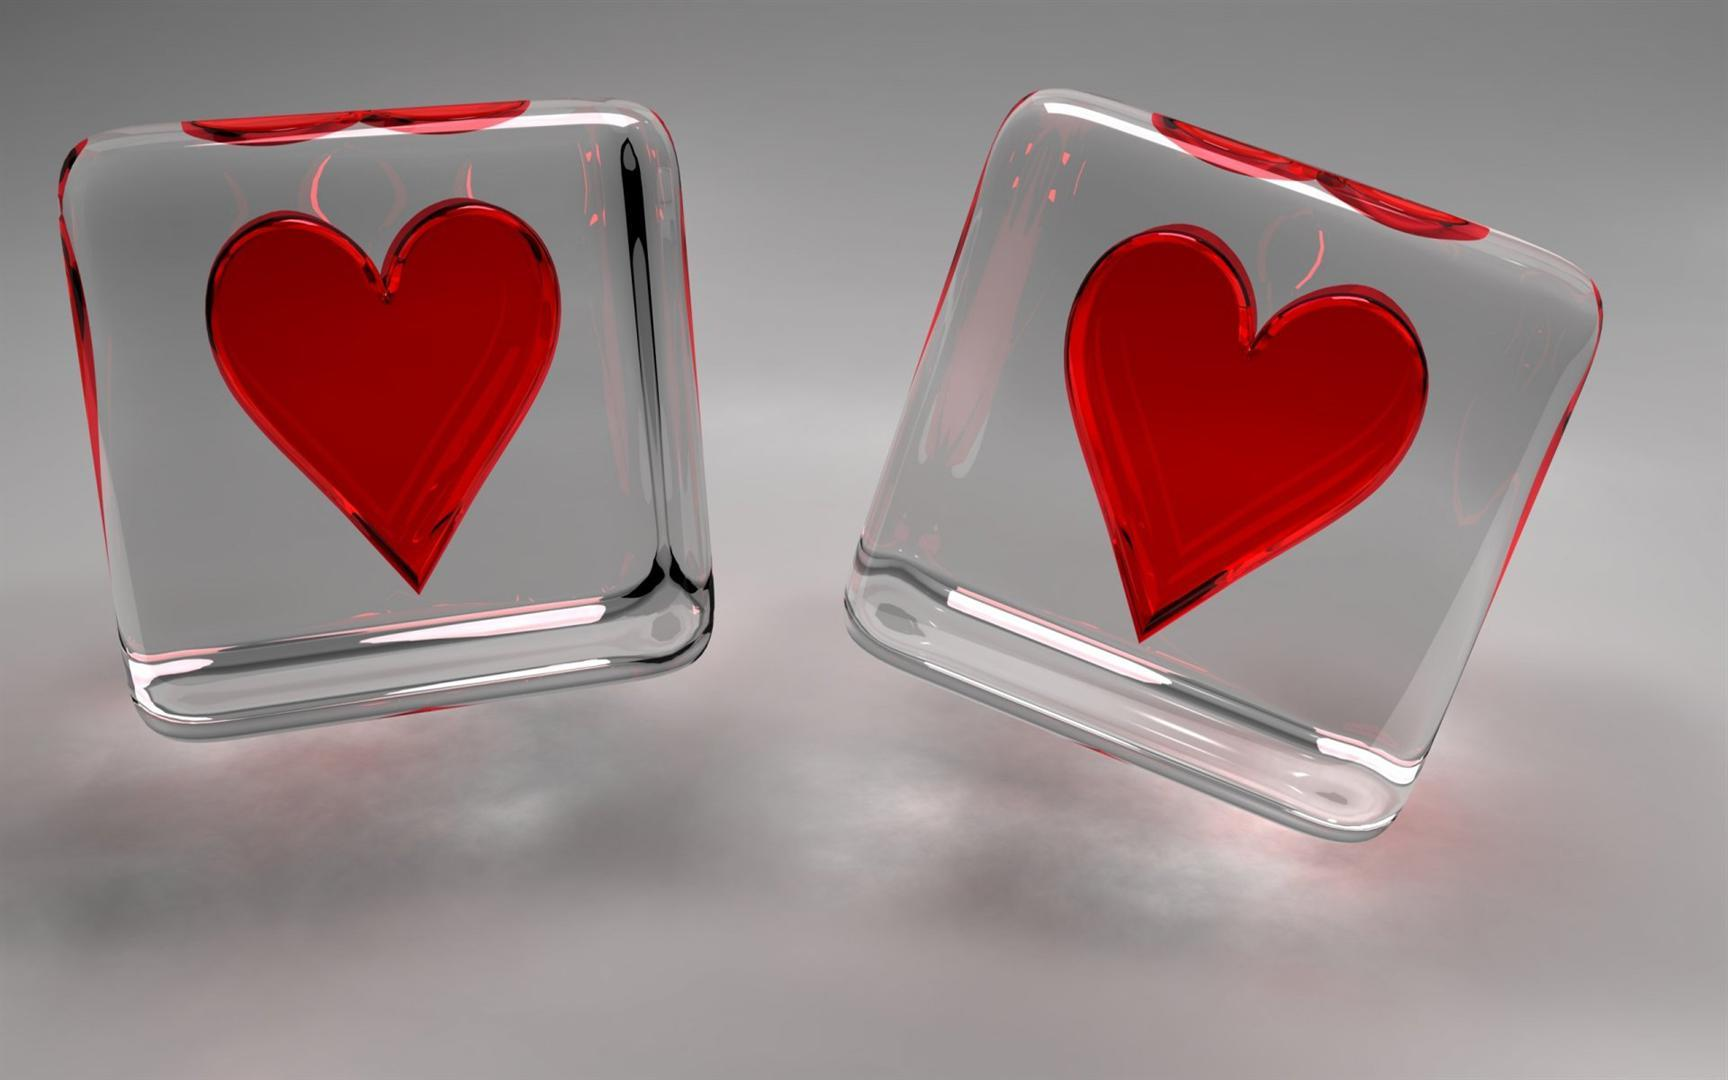 Love Heart Wallpaper Background 3d : 3d Love Wallpapers - Wallpaper cave